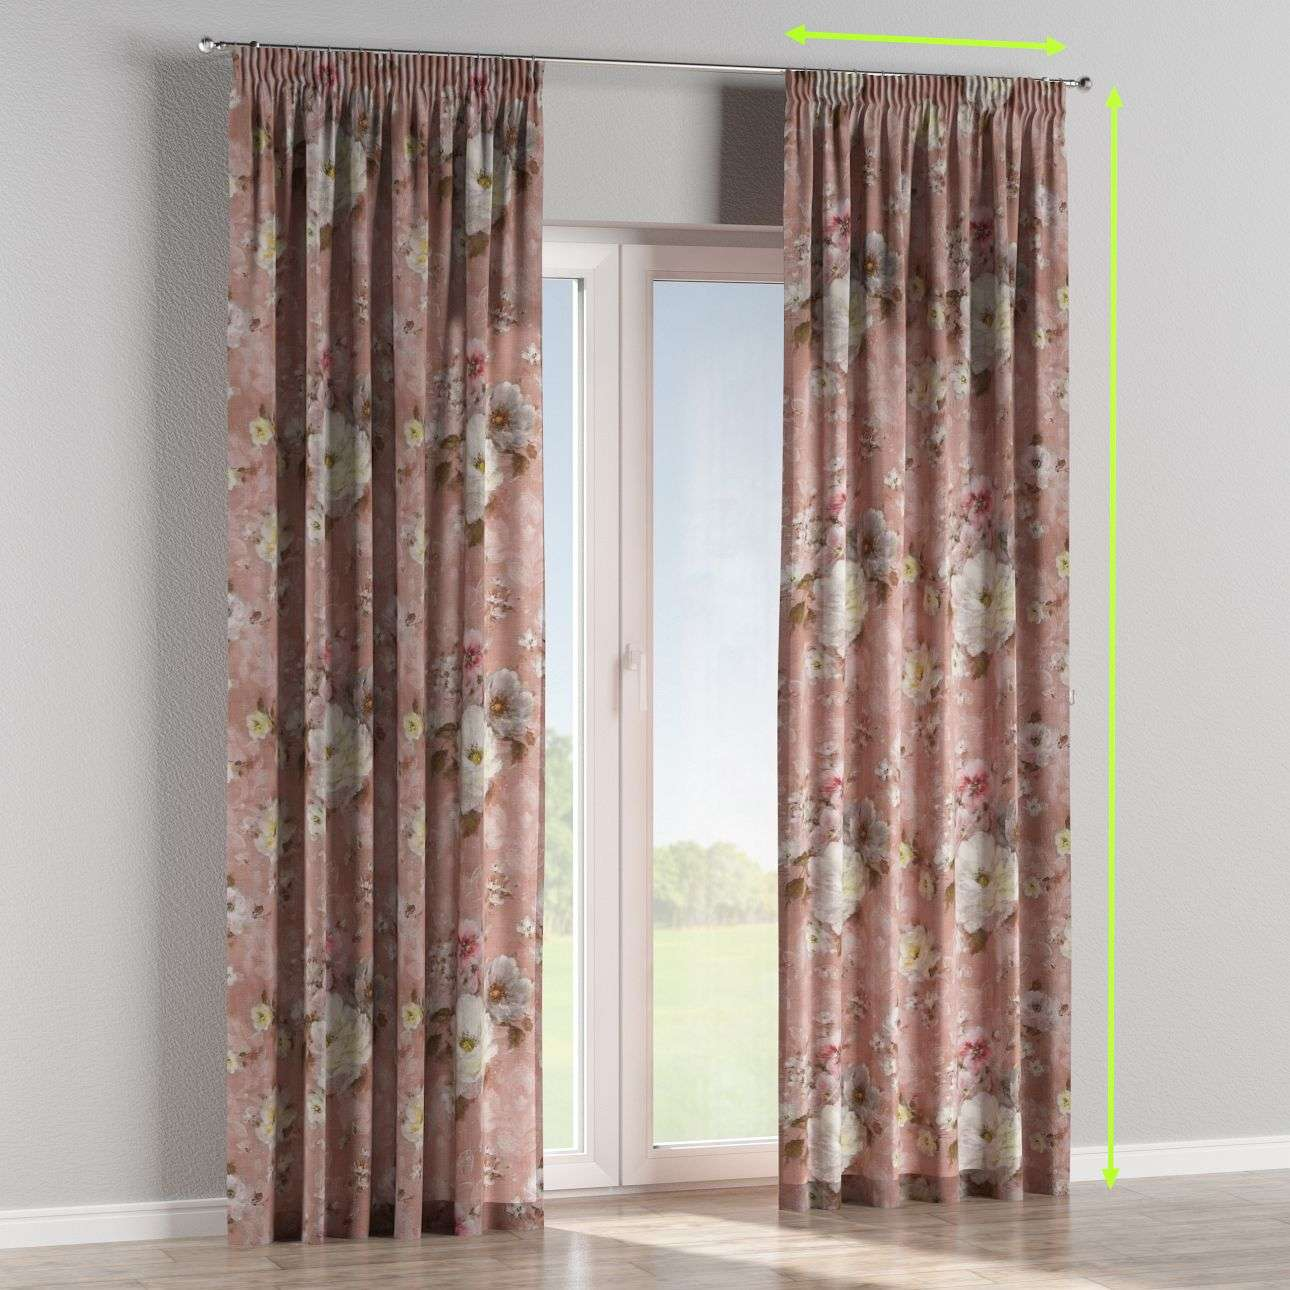 Pencil pleat lined curtains in collection Monet, fabric: 137-83